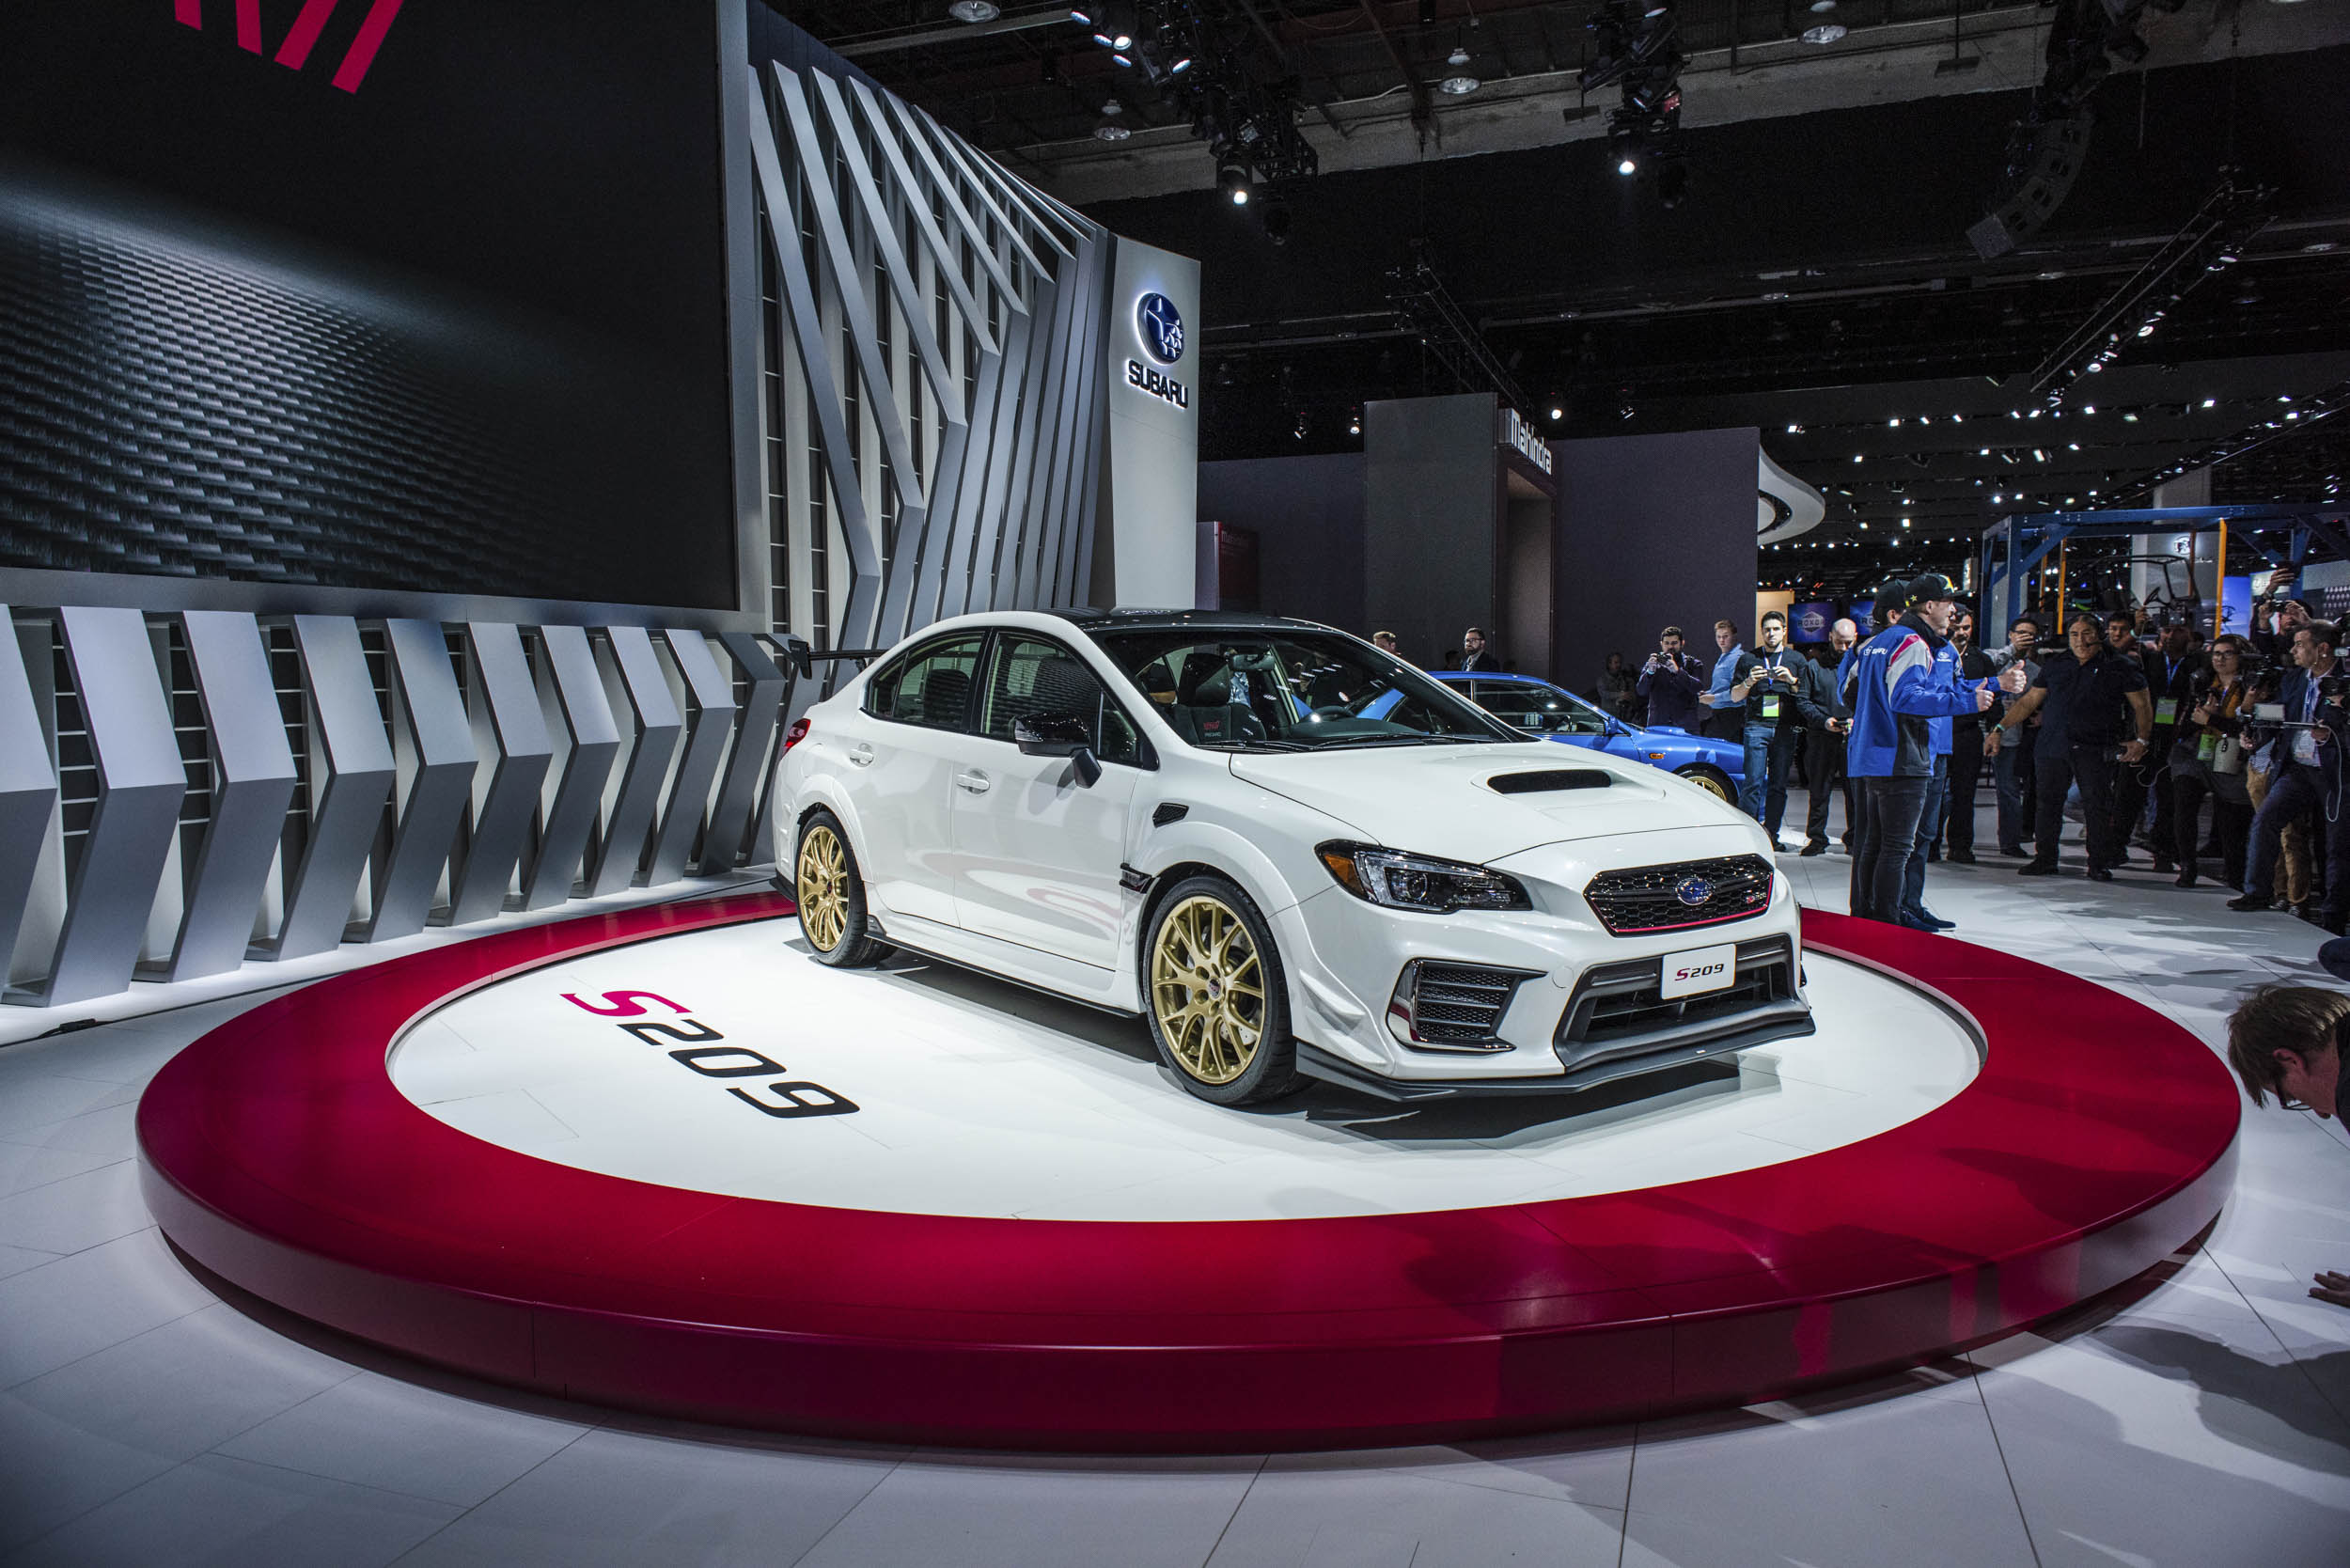 2020 Subaru WRX STI S209 on the show floor